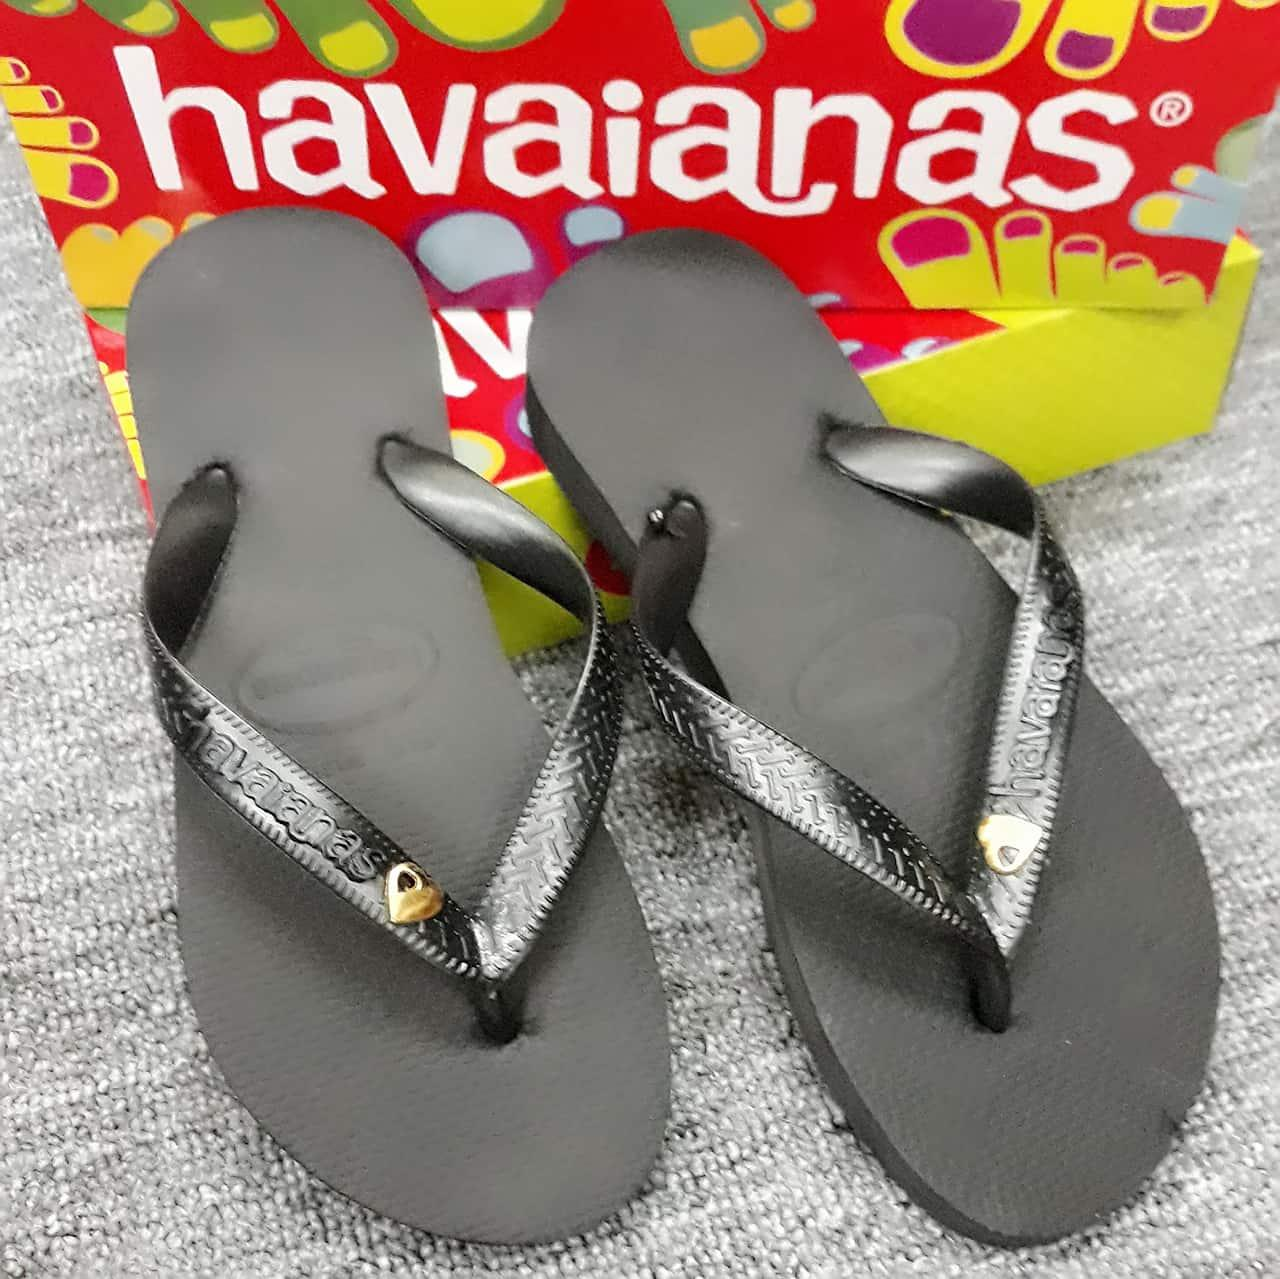 a9548c68ab4a House Slippers for Women for sale - Slippers for Women online brands ...